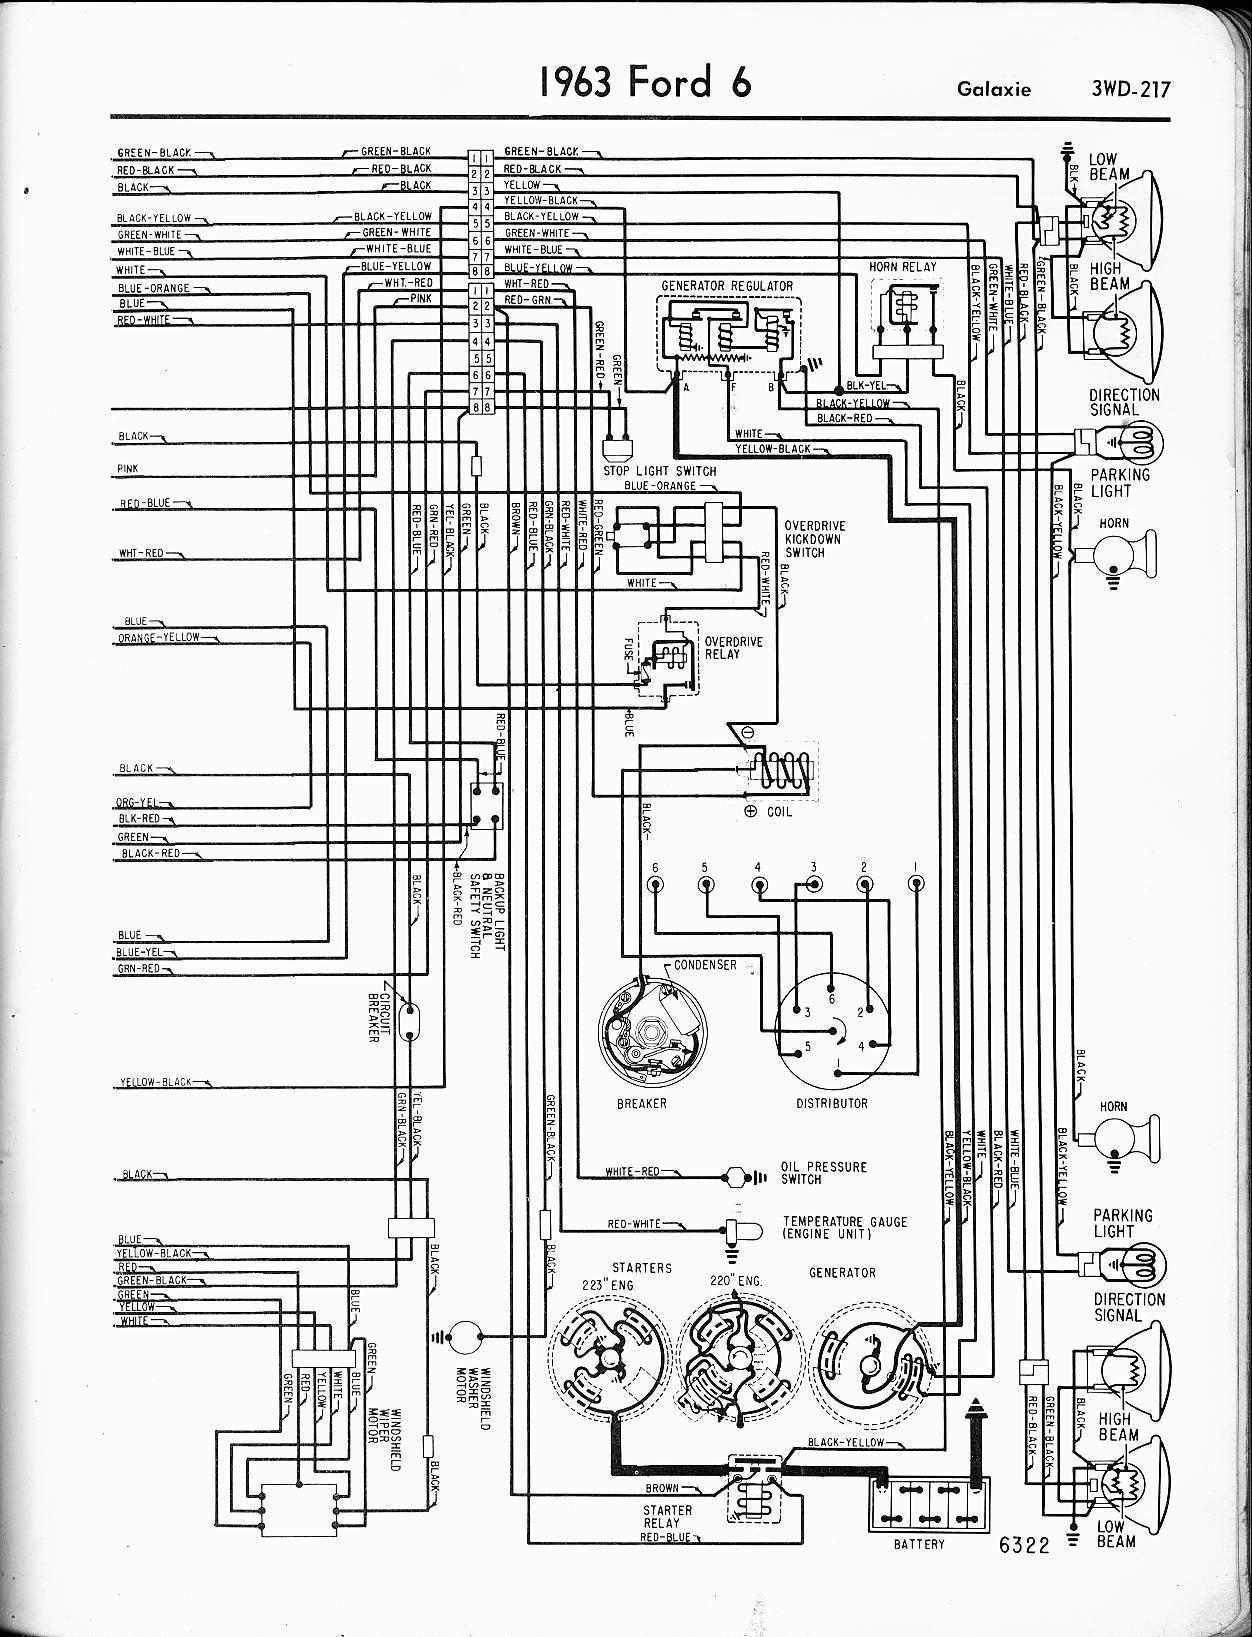 65 Ford Galaxie Wiring Diagram Trusted 1955 F250 1970 Ltd Schematics Dodge Challenger 57